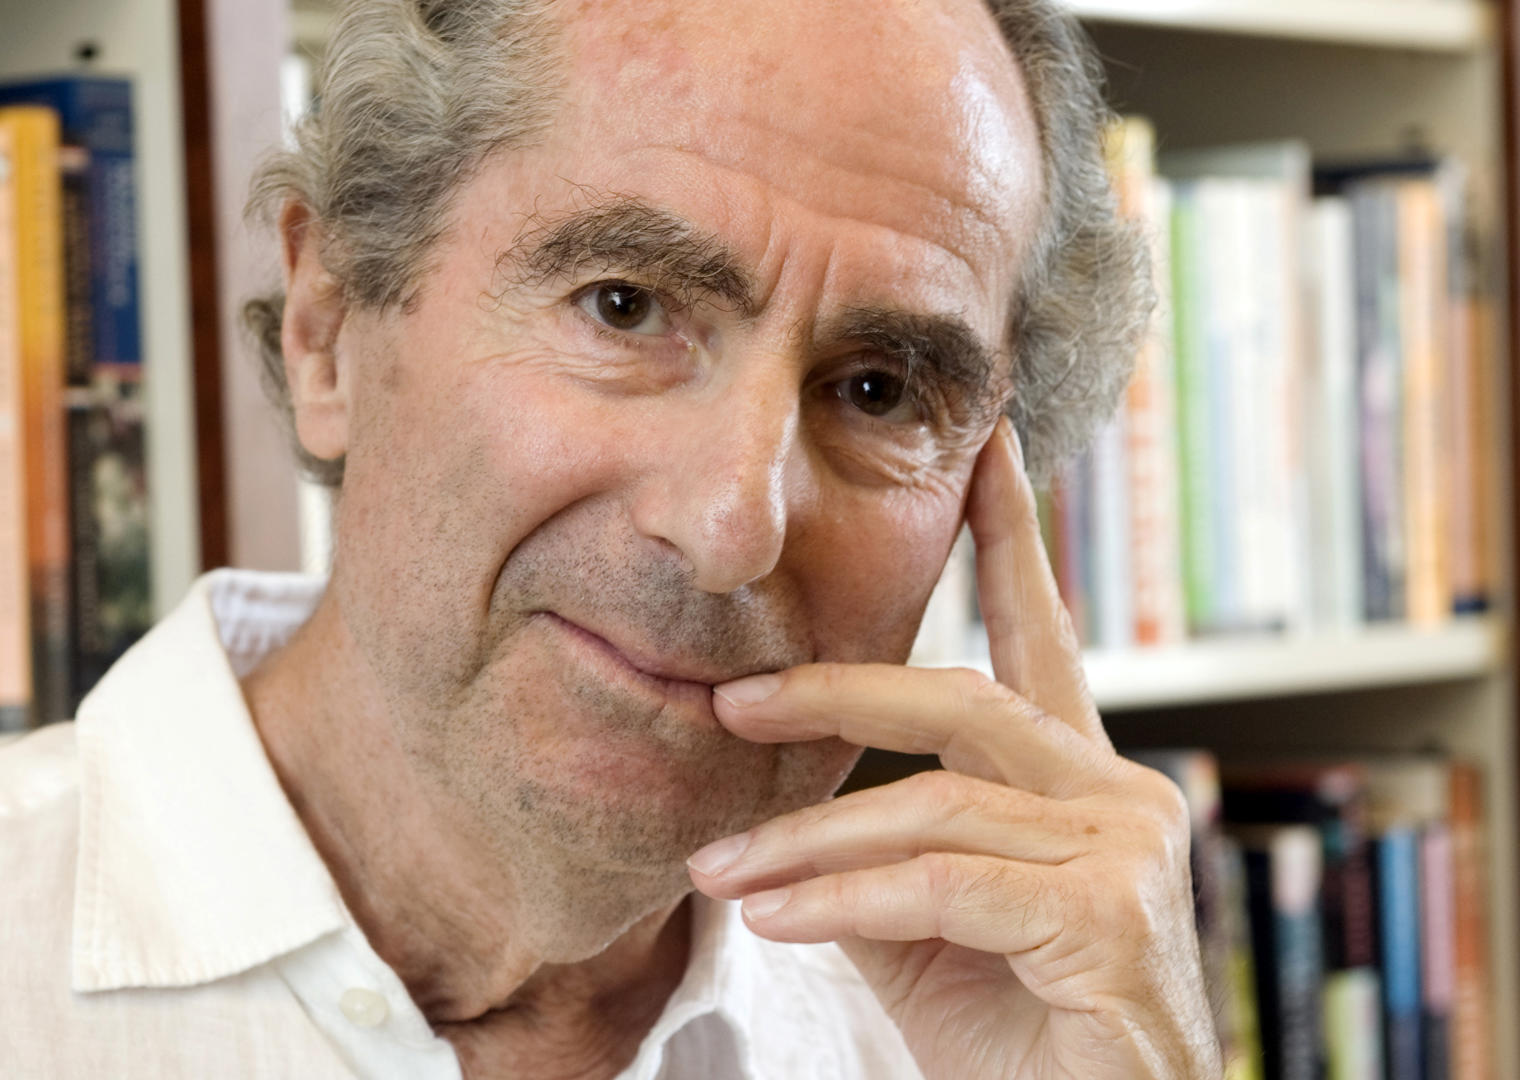 Slide 59 of 158: FILE - In this Sept. 8, 2008, file photo, author Philip Roth poses for a photo in the offices of his publisher, Houghton Mifflin, in New York. Roth, prize-winning novelist and fearless narrator of sex, religion and mortality, has died at age 85, his literary agent said Tuesday, May 22, 2018. (AP Photo/Richard Drew, File)